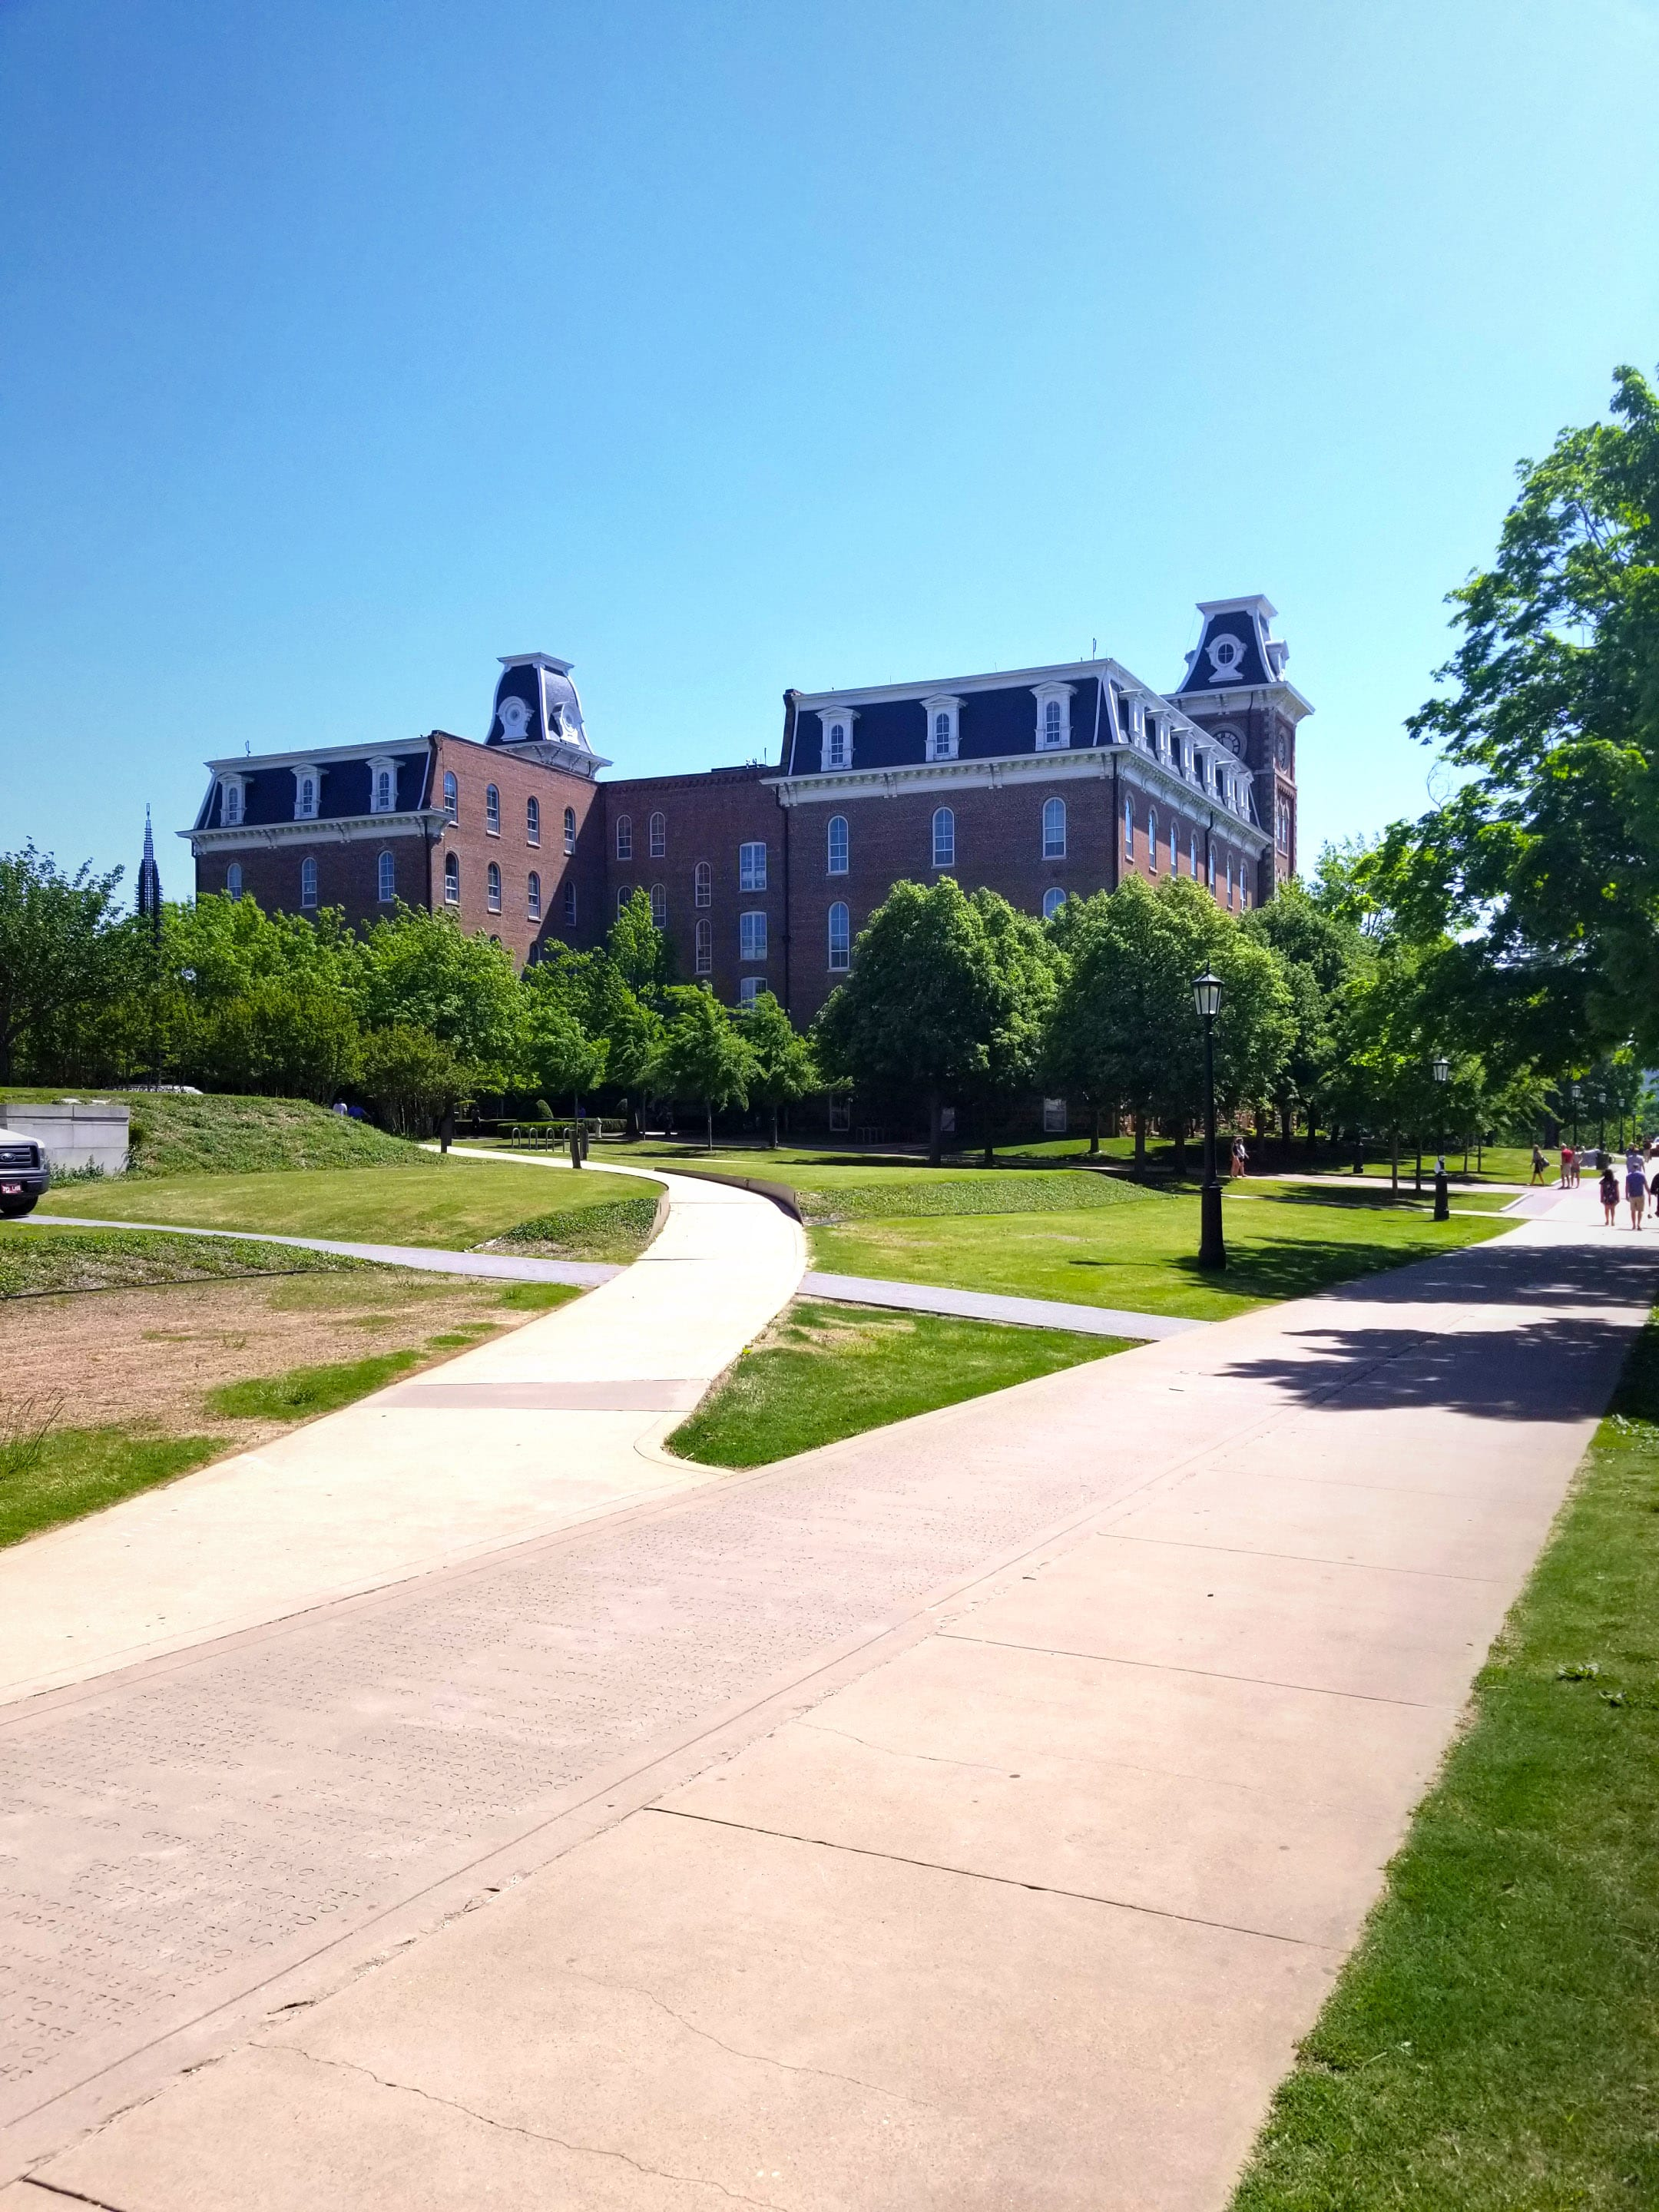 A view of Old Main from the West lawn